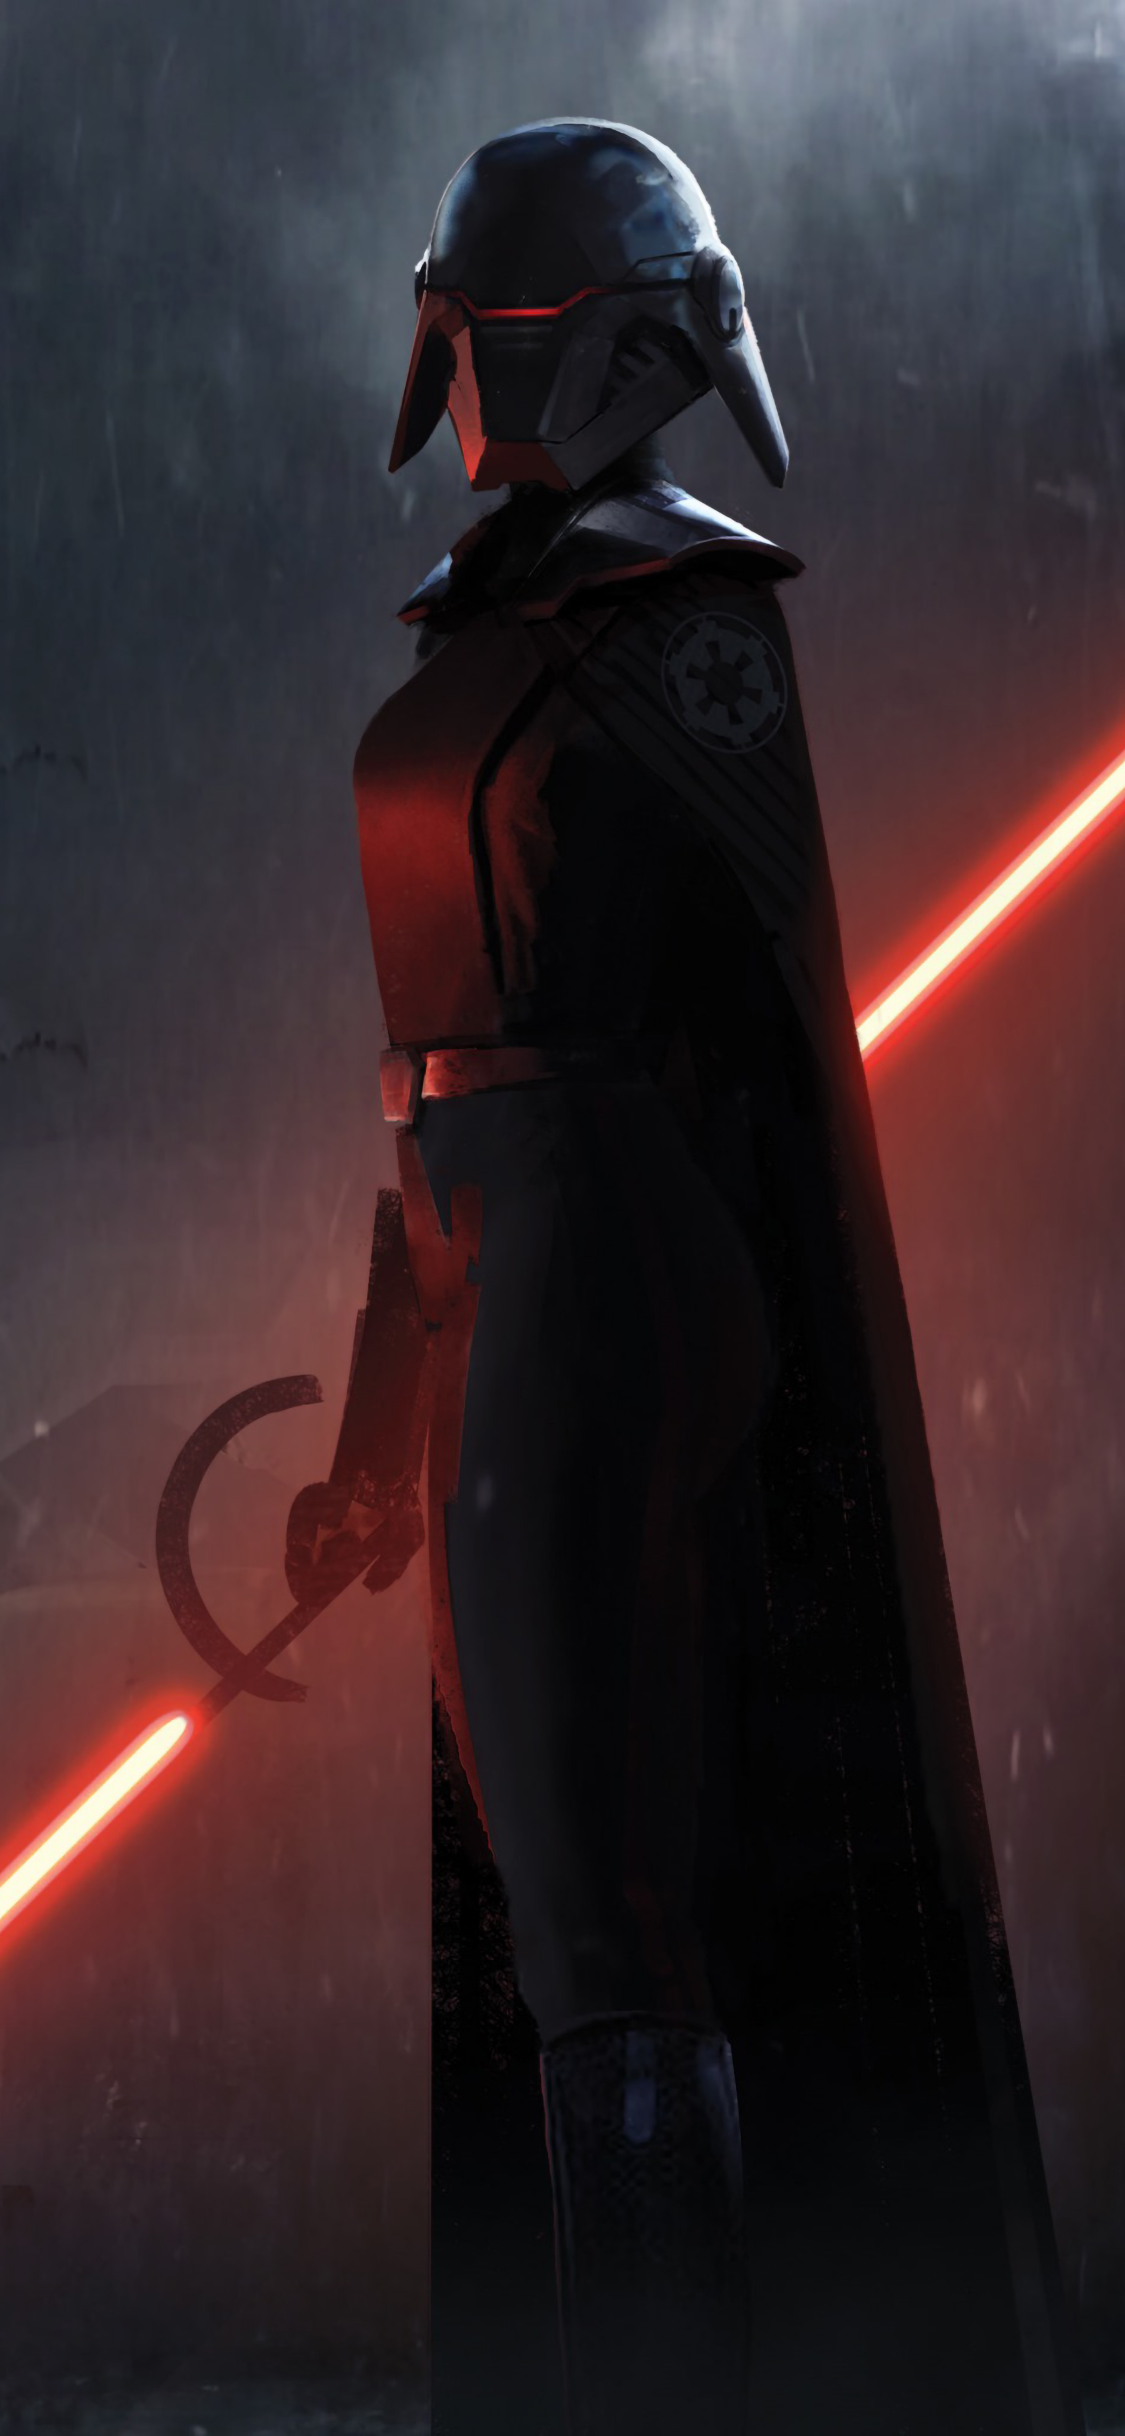 1125x2436 Second Sister Star Wars Jedi Fallen Order Iphone Xs Iphone 10 Iphone X Wallpaper Hd Games 4k Wallpapers Images Photos And Background